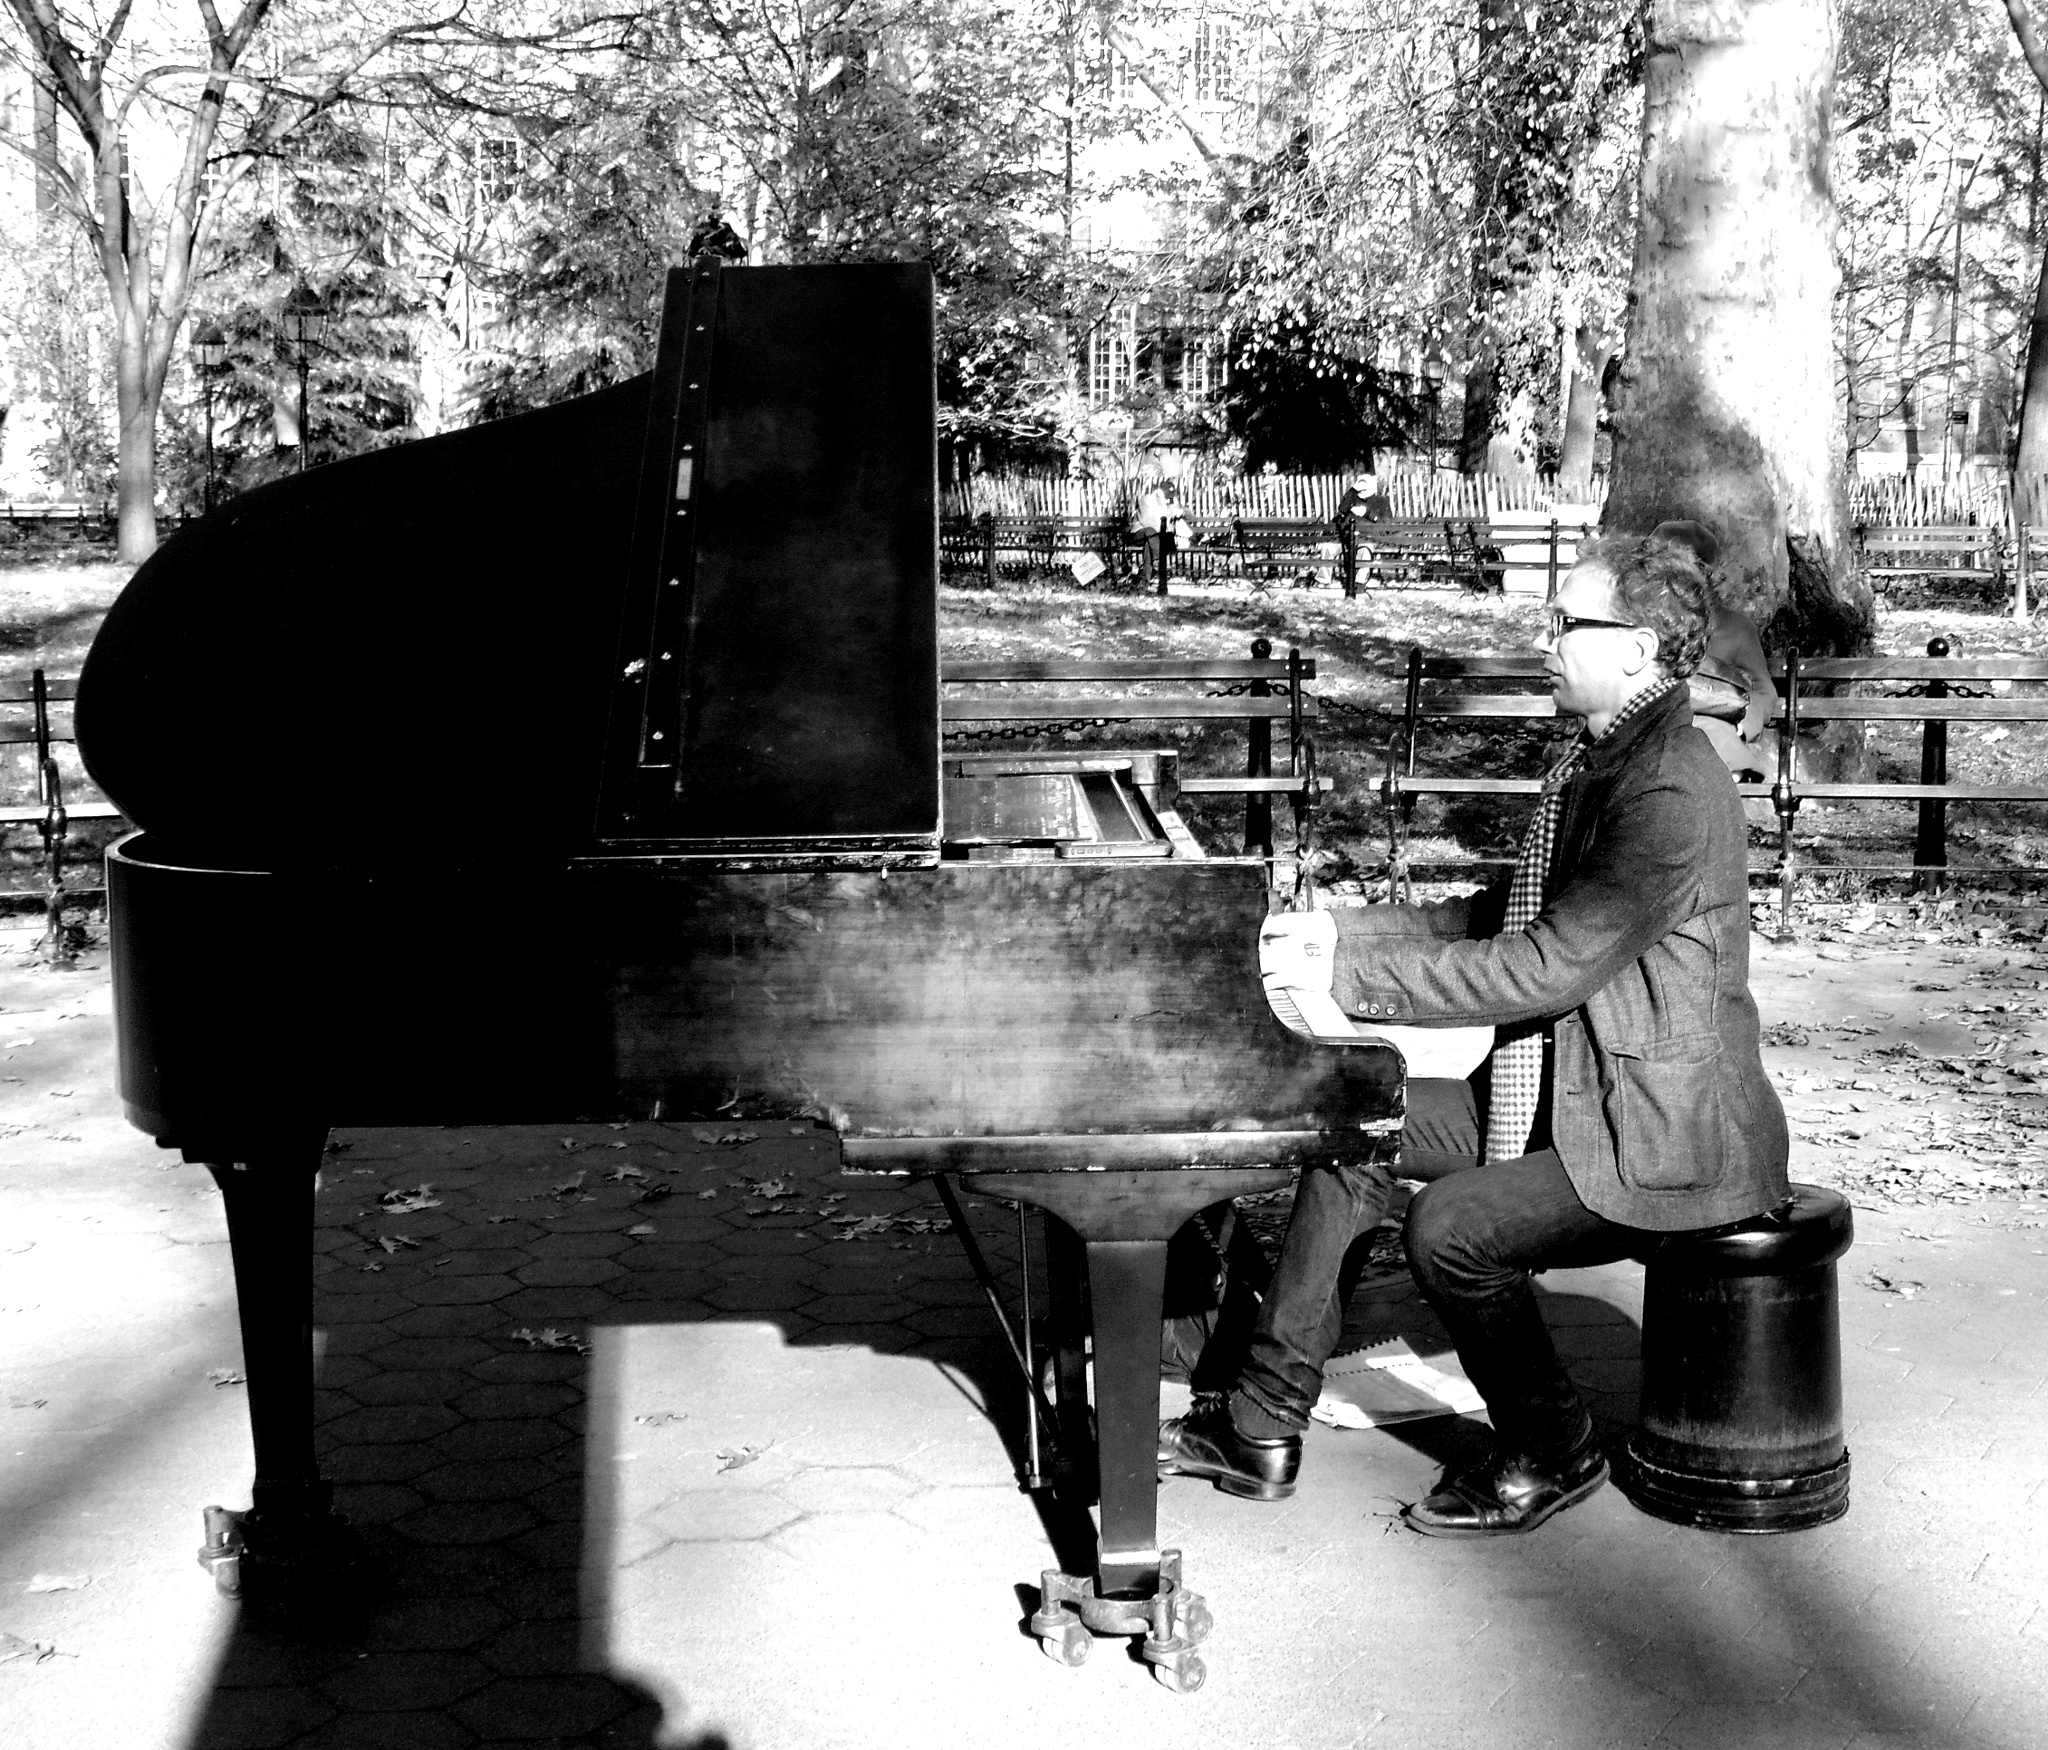 Piano In The Park by Scott Charles Johnson